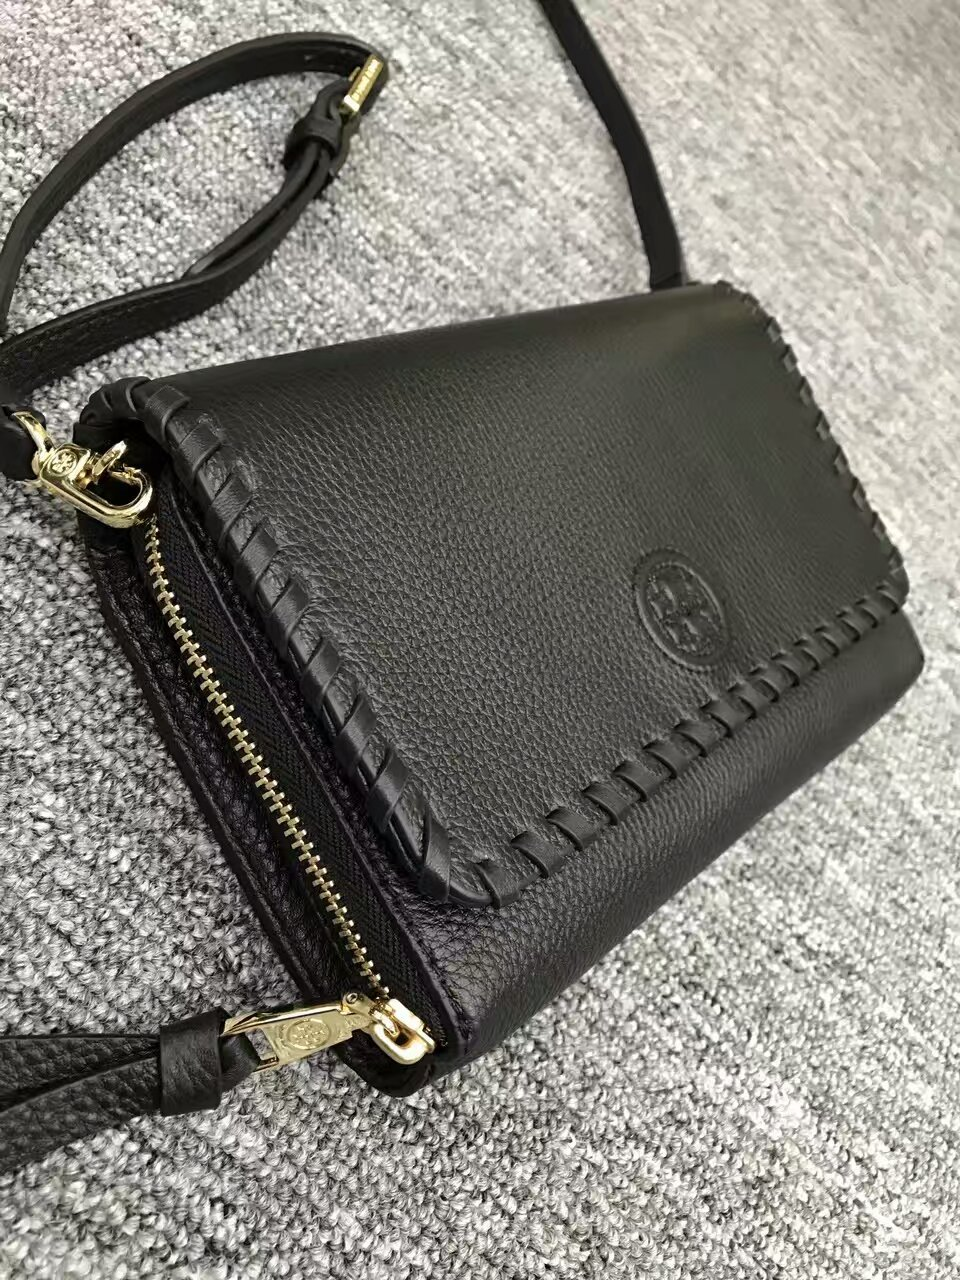 effd1d2b3a35 Authentic Tory Burch Marion Flat Wallet and 50 similar items